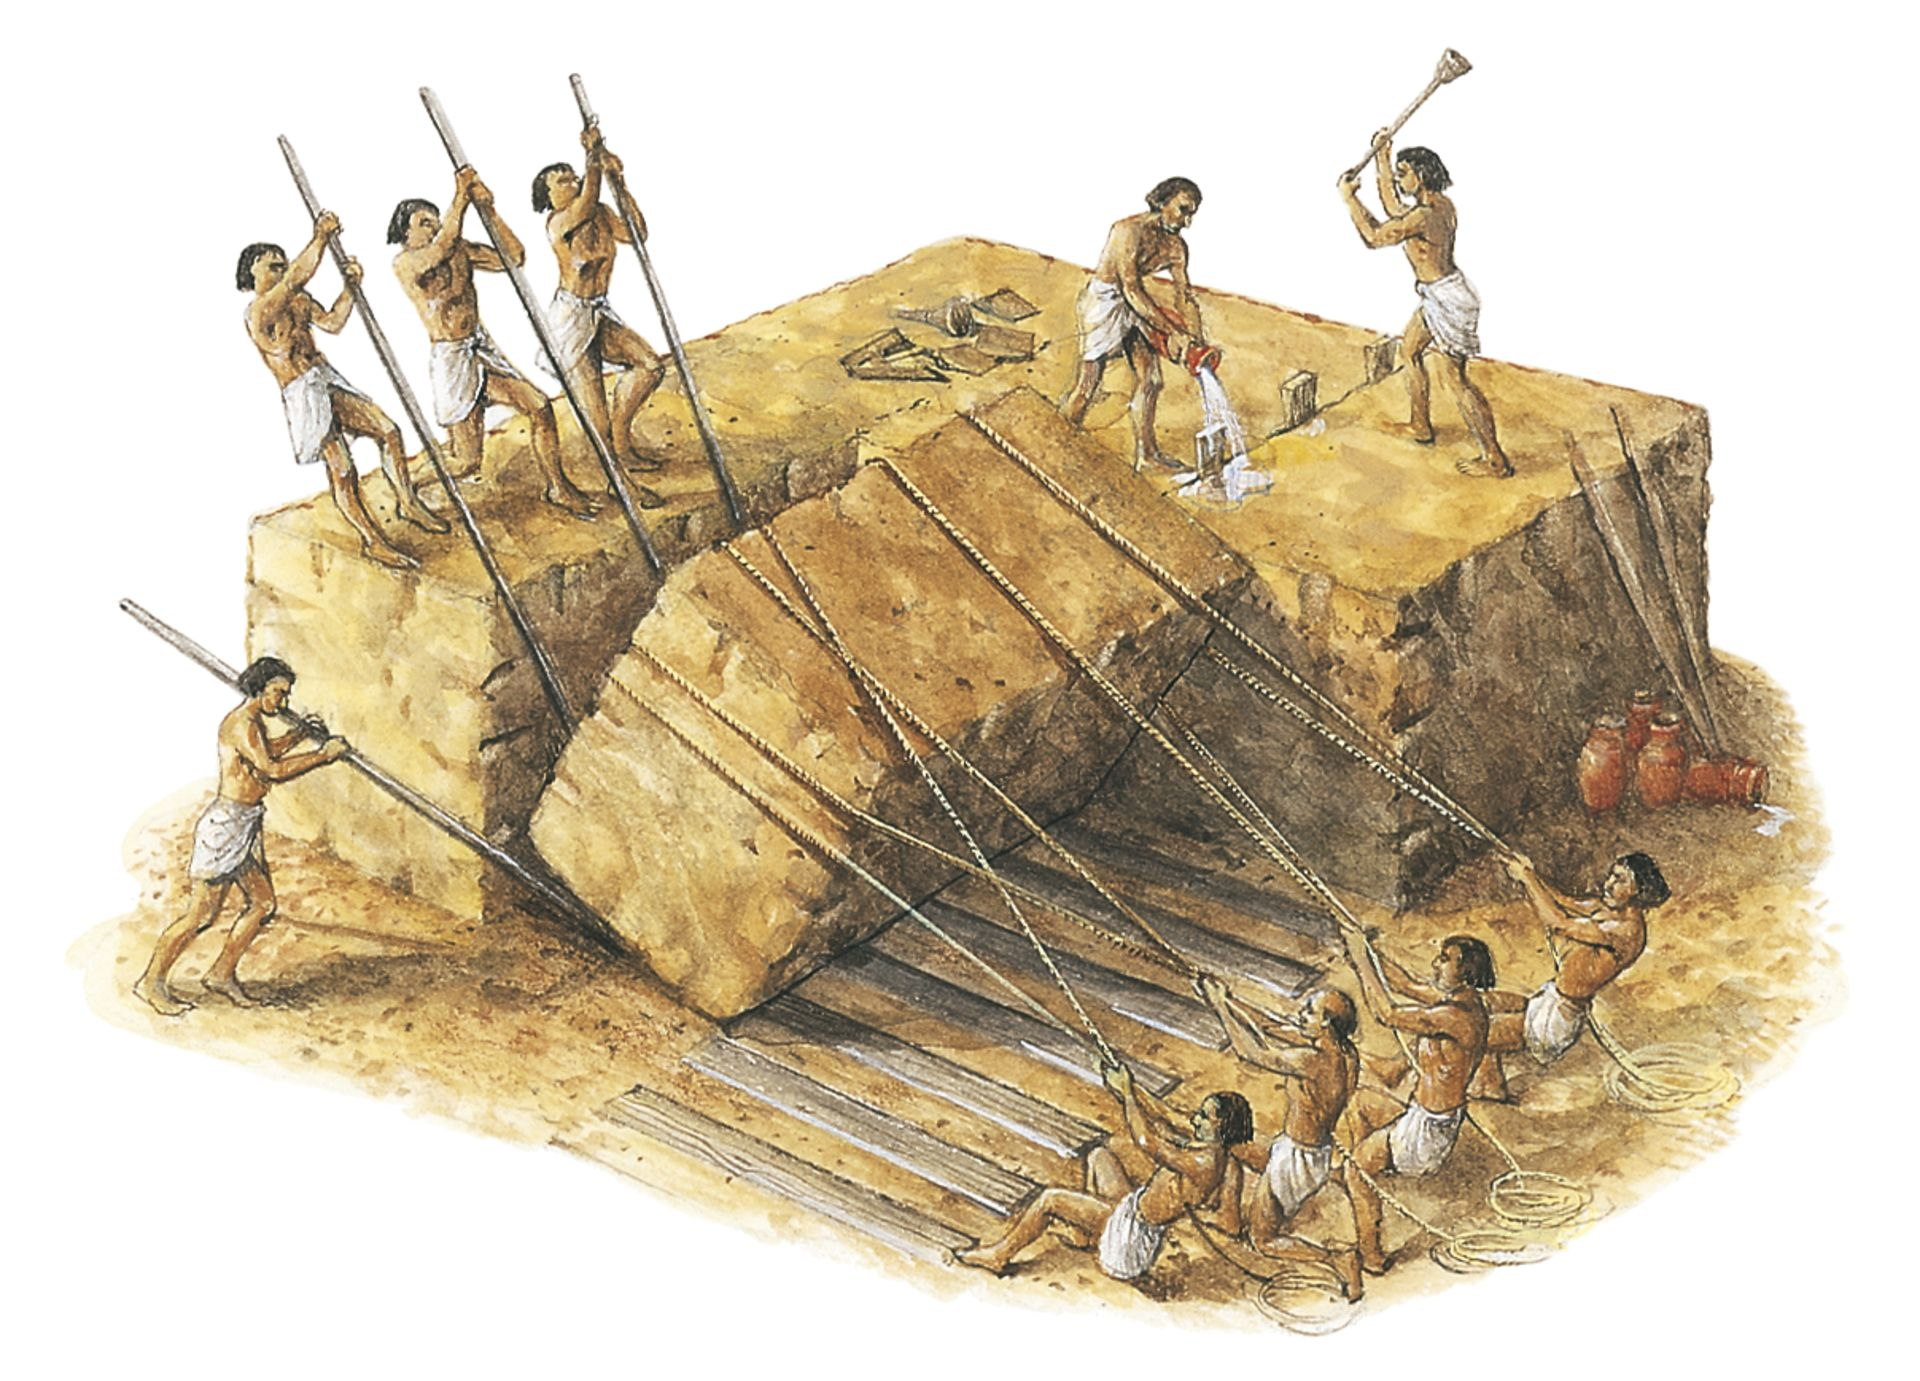 a history of the construction of the great pyramids of ancient egypt Glen dash, an engineer who studies the pyramids at giza as part of ancient egypt research associates (aera), noted that khufu's pyramid is aligned to true north within one-tenth of a degree.